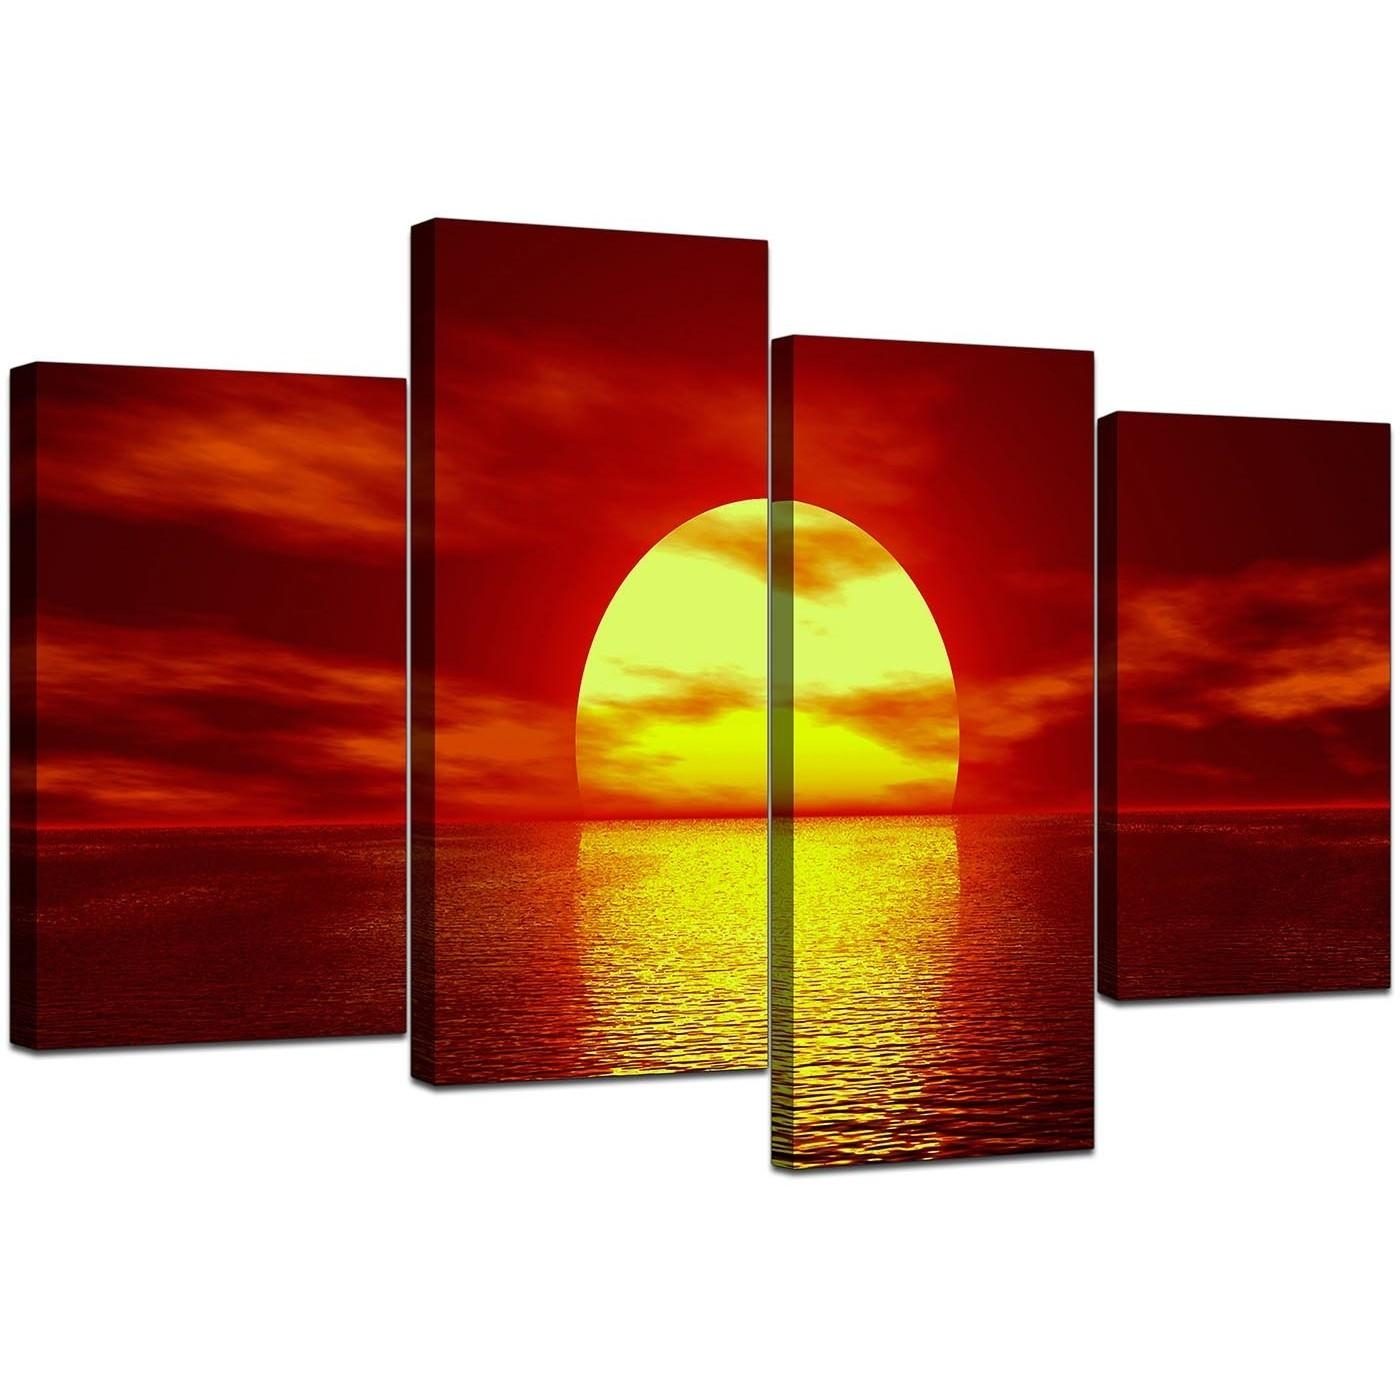 Wall Decor: Canvas Wall Art Images (View 20 of 20)